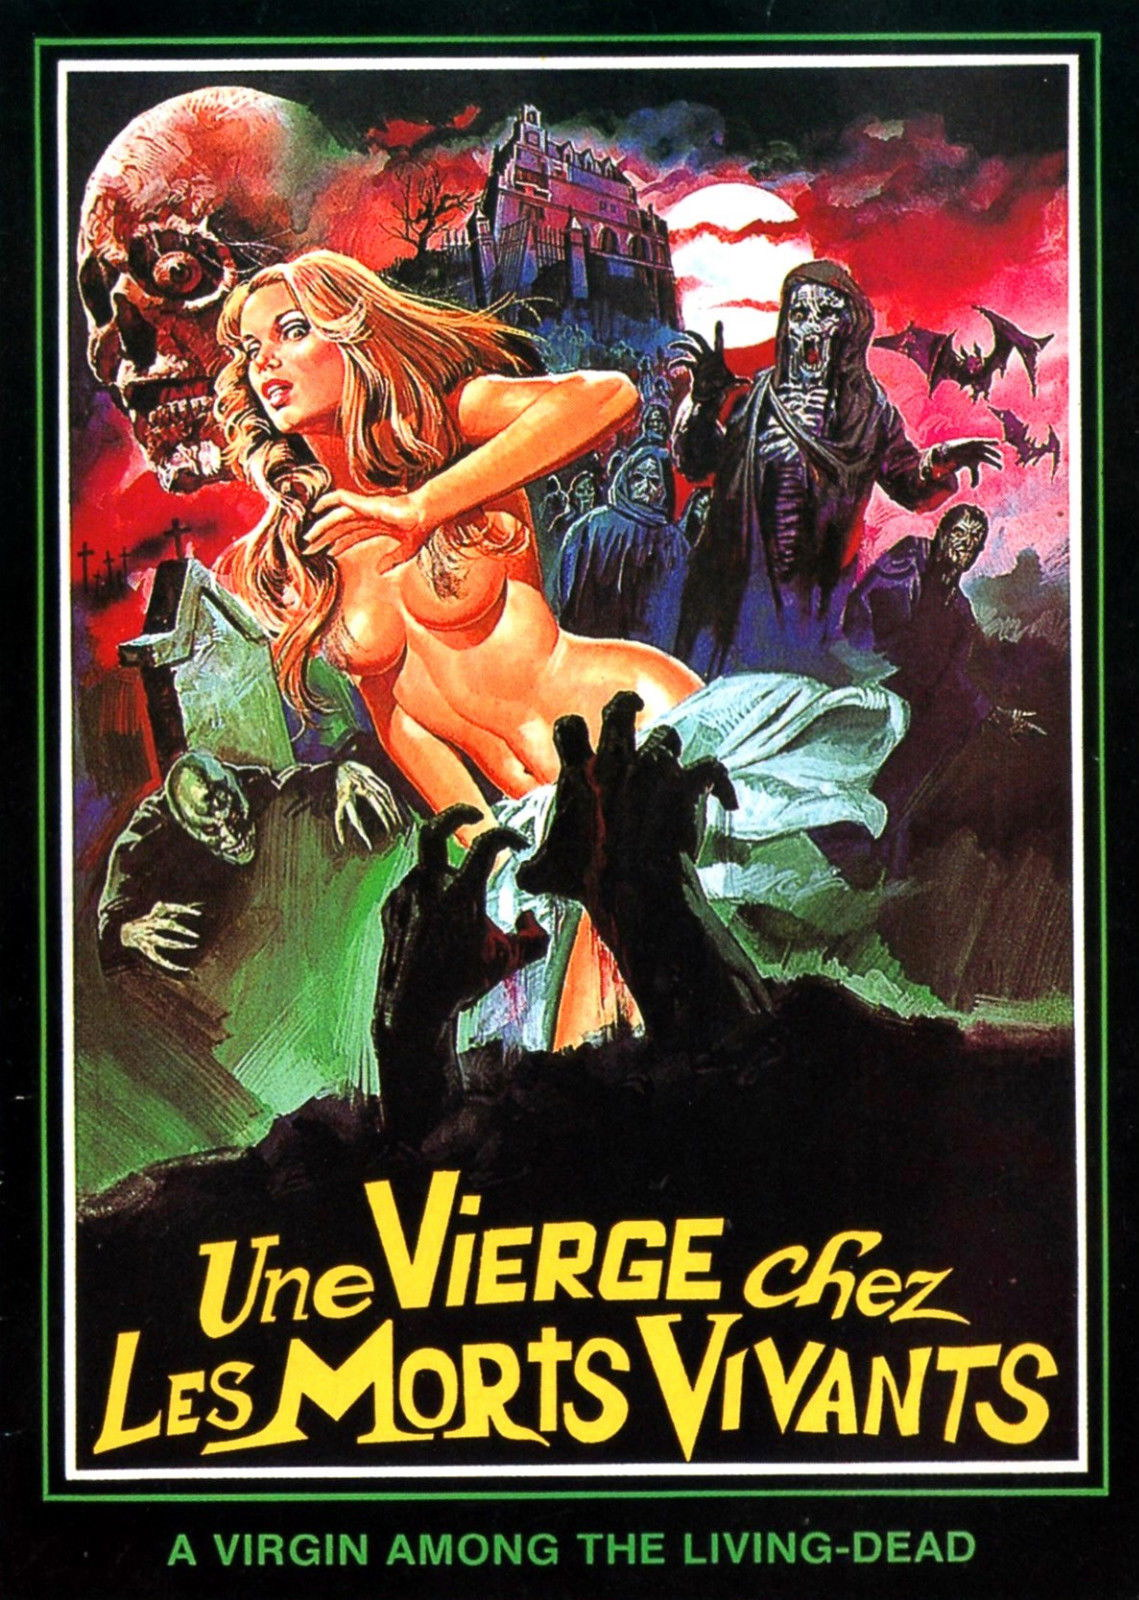 72446-A-VIRGIN-AMONG-THE-LIVING-DEAD-Movie-Zombies-Wall-Print-Poster-Affiche